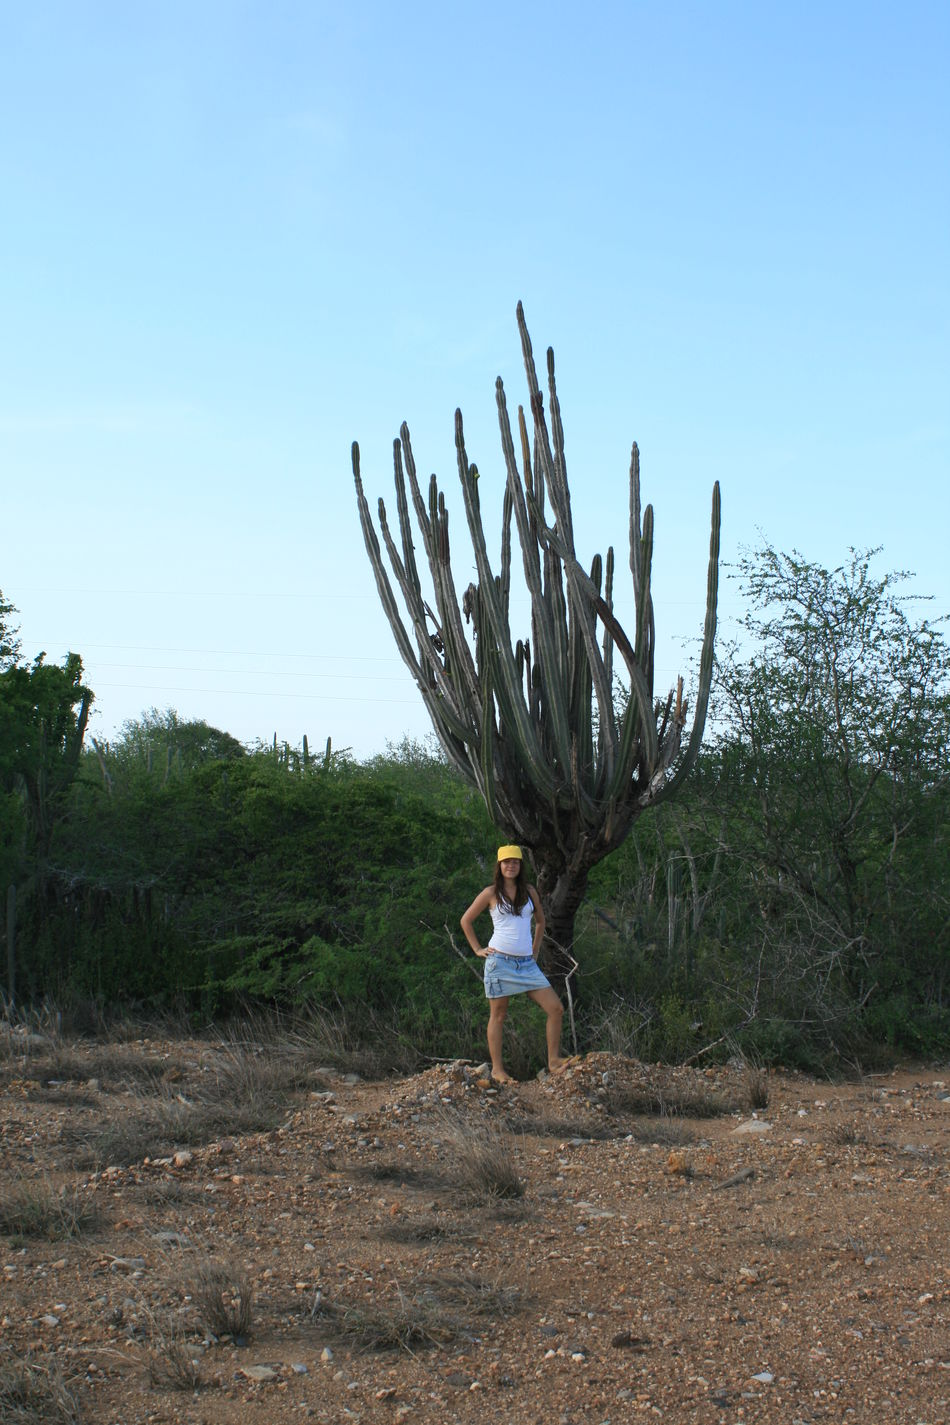 Big Cactus Cactus Casual Clothing Clear Sky Field Full Length Giant Cactus Landscape Leisure Activity Lifestyles Margarita Island Margarita, Venezuela Men Nature Rear View Sky Travel Travel Photography Traveling